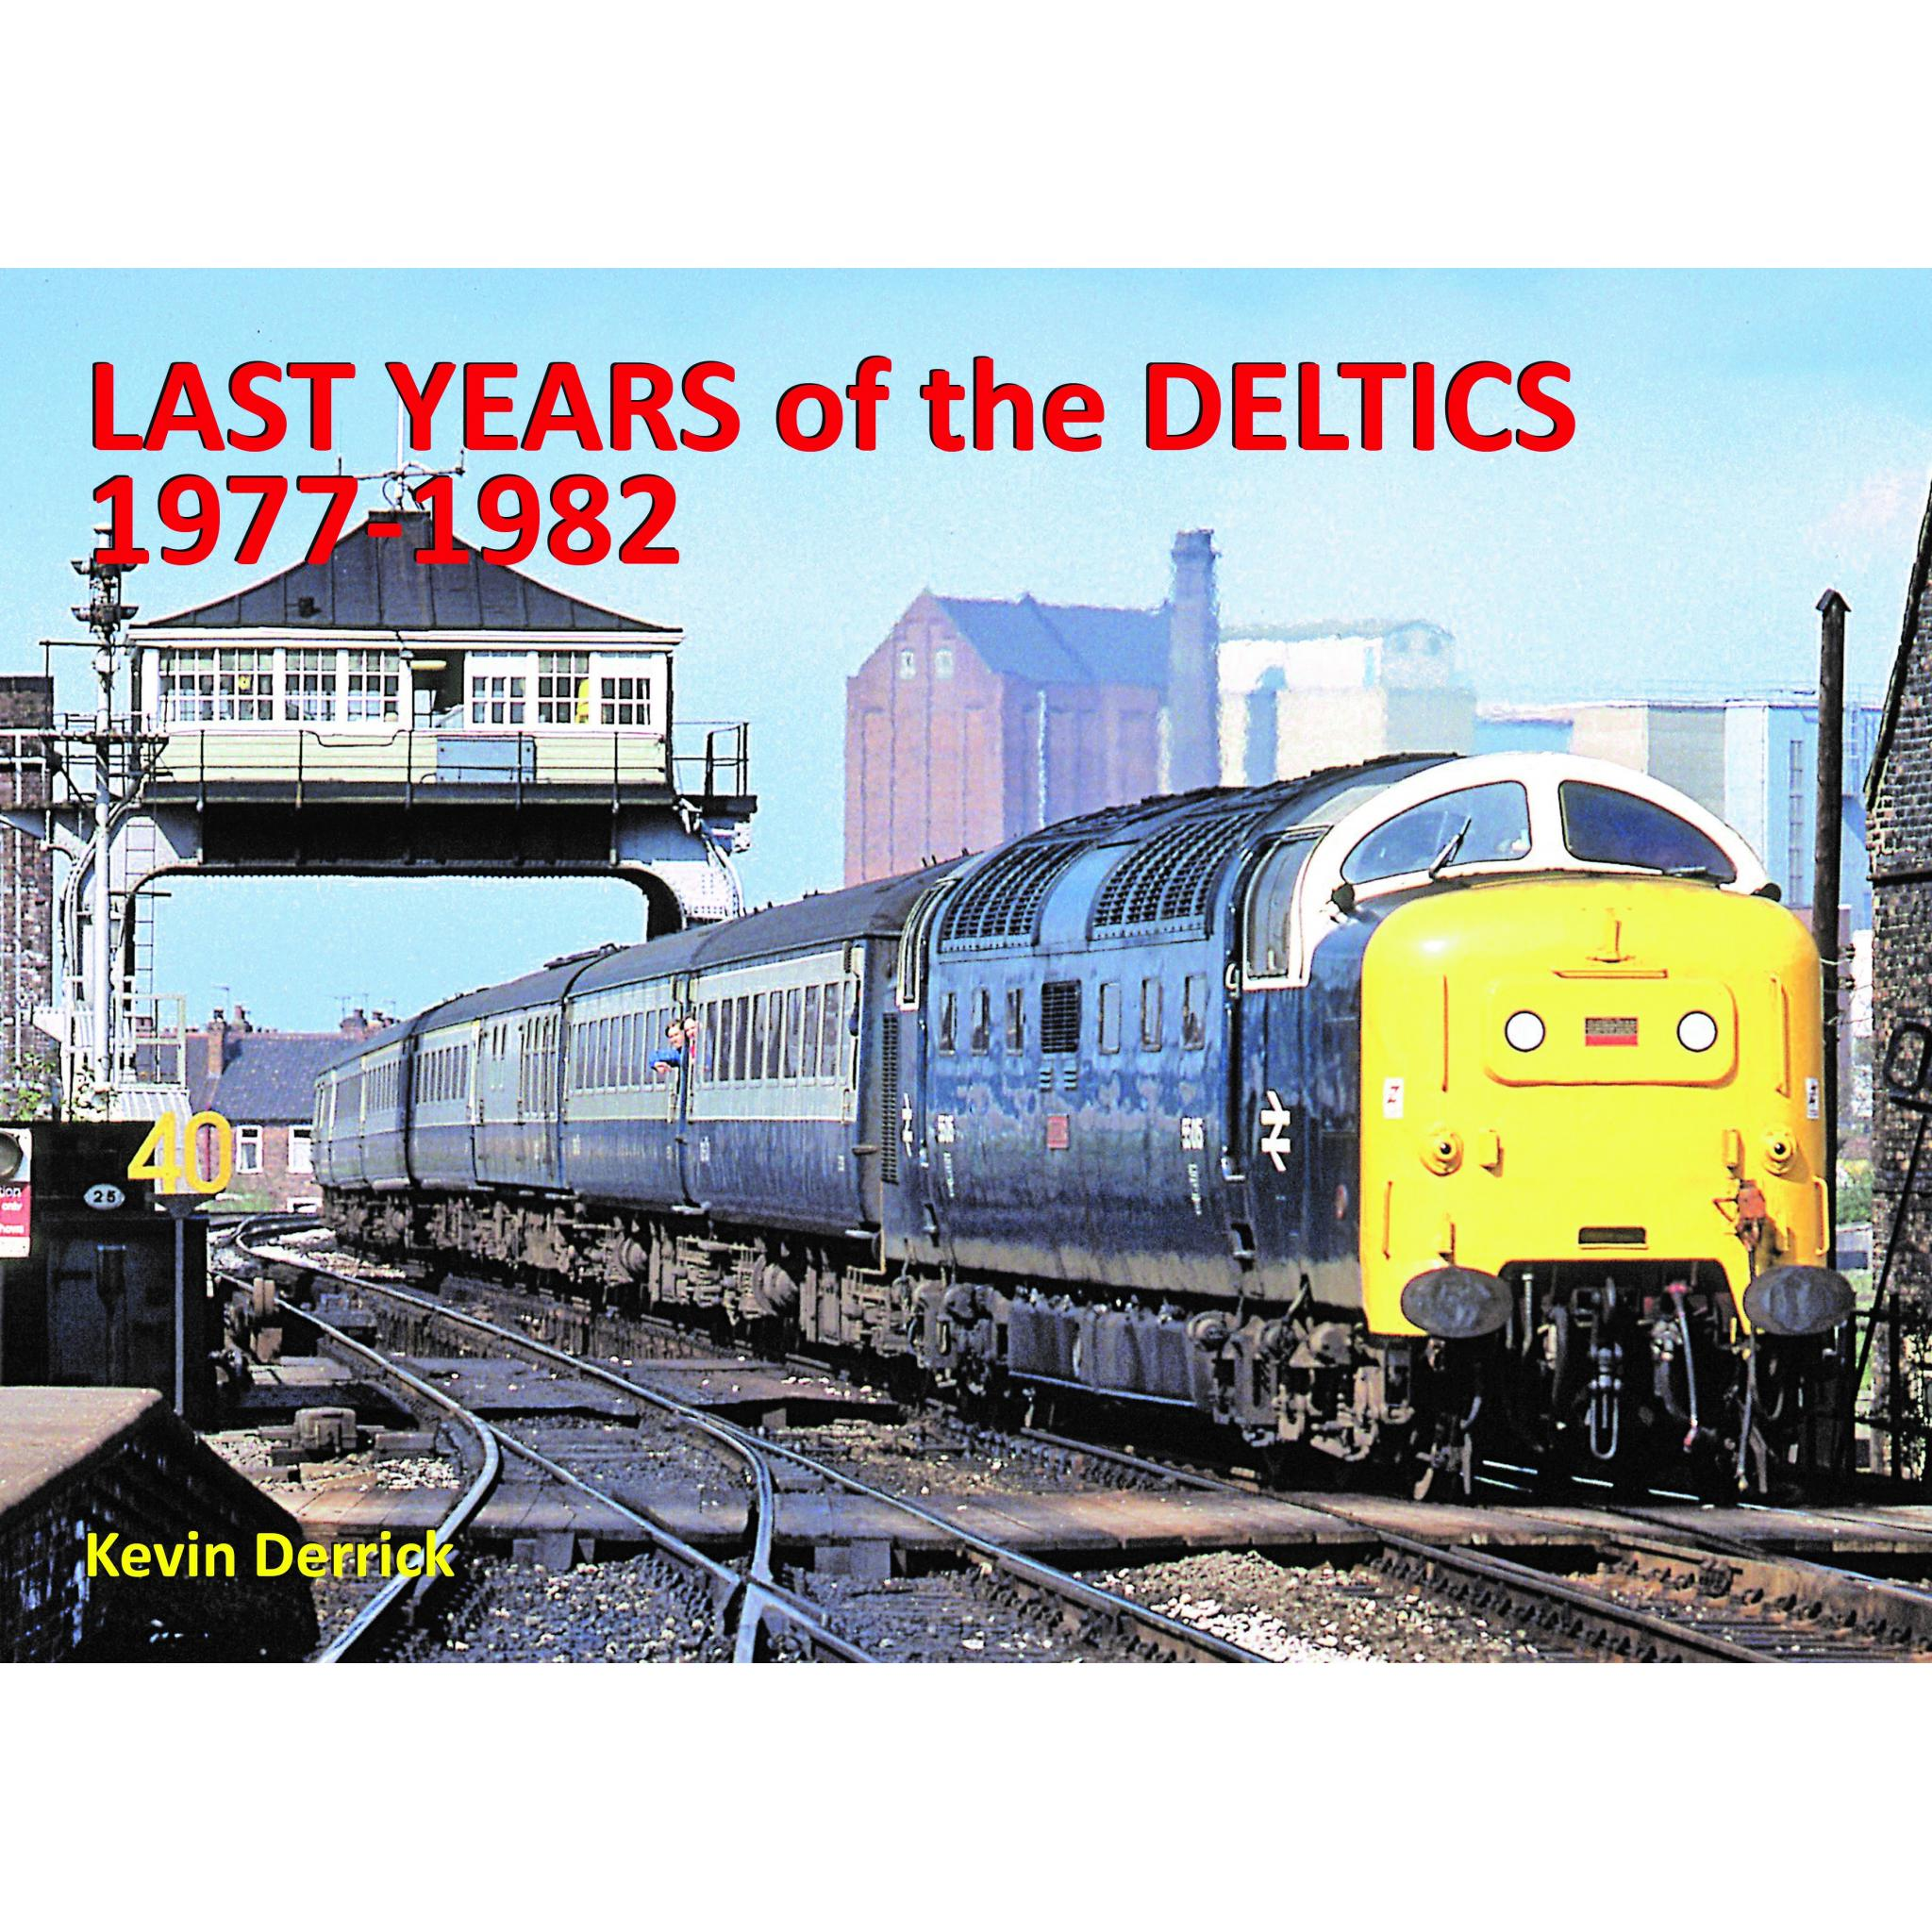 Last Years of the DELTICS 1977 -1982